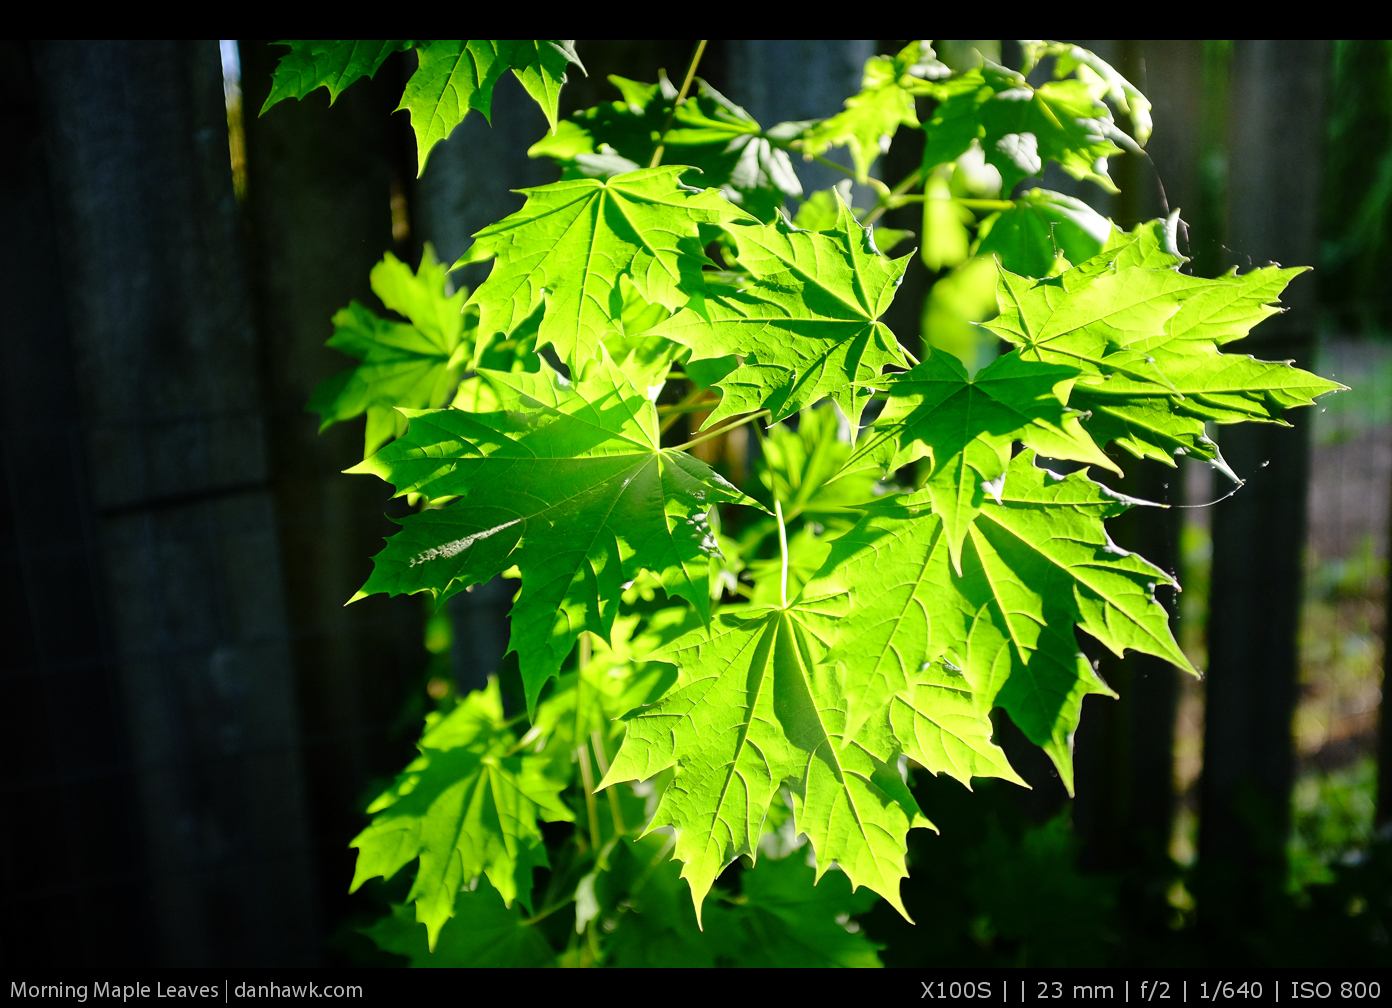 Morning Maple Leaves